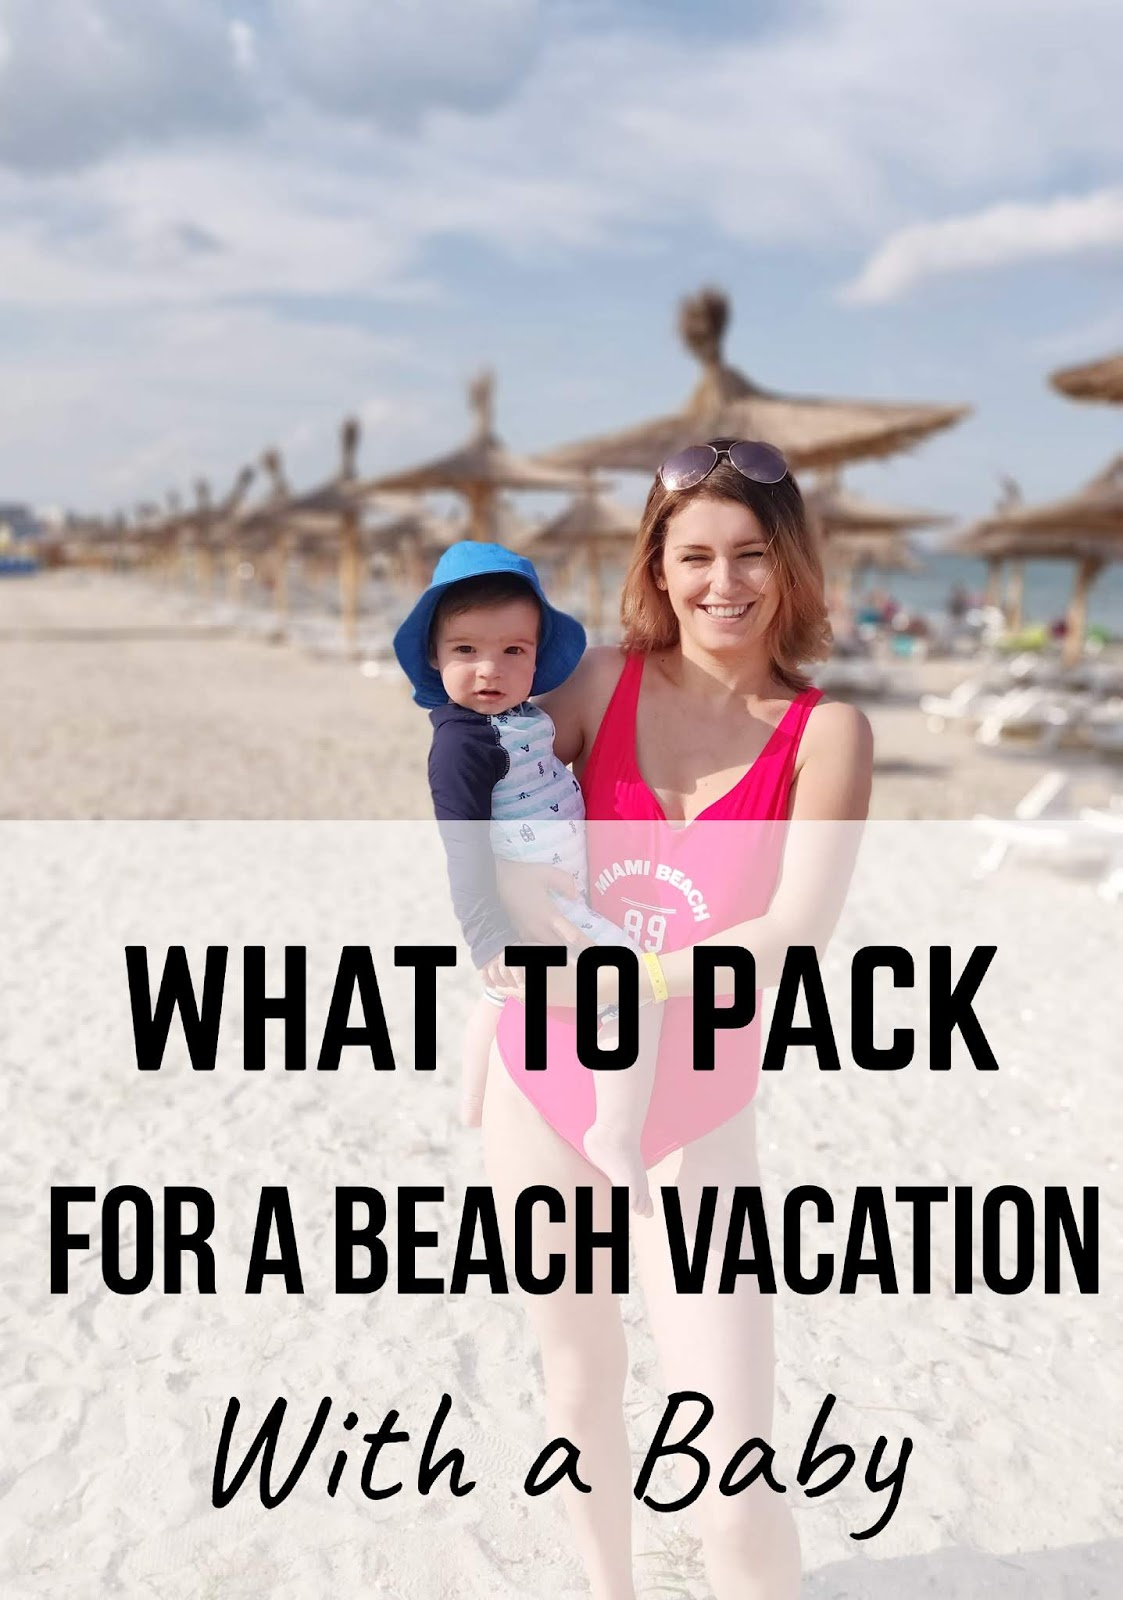 What to pack for a beach vacation with a baby